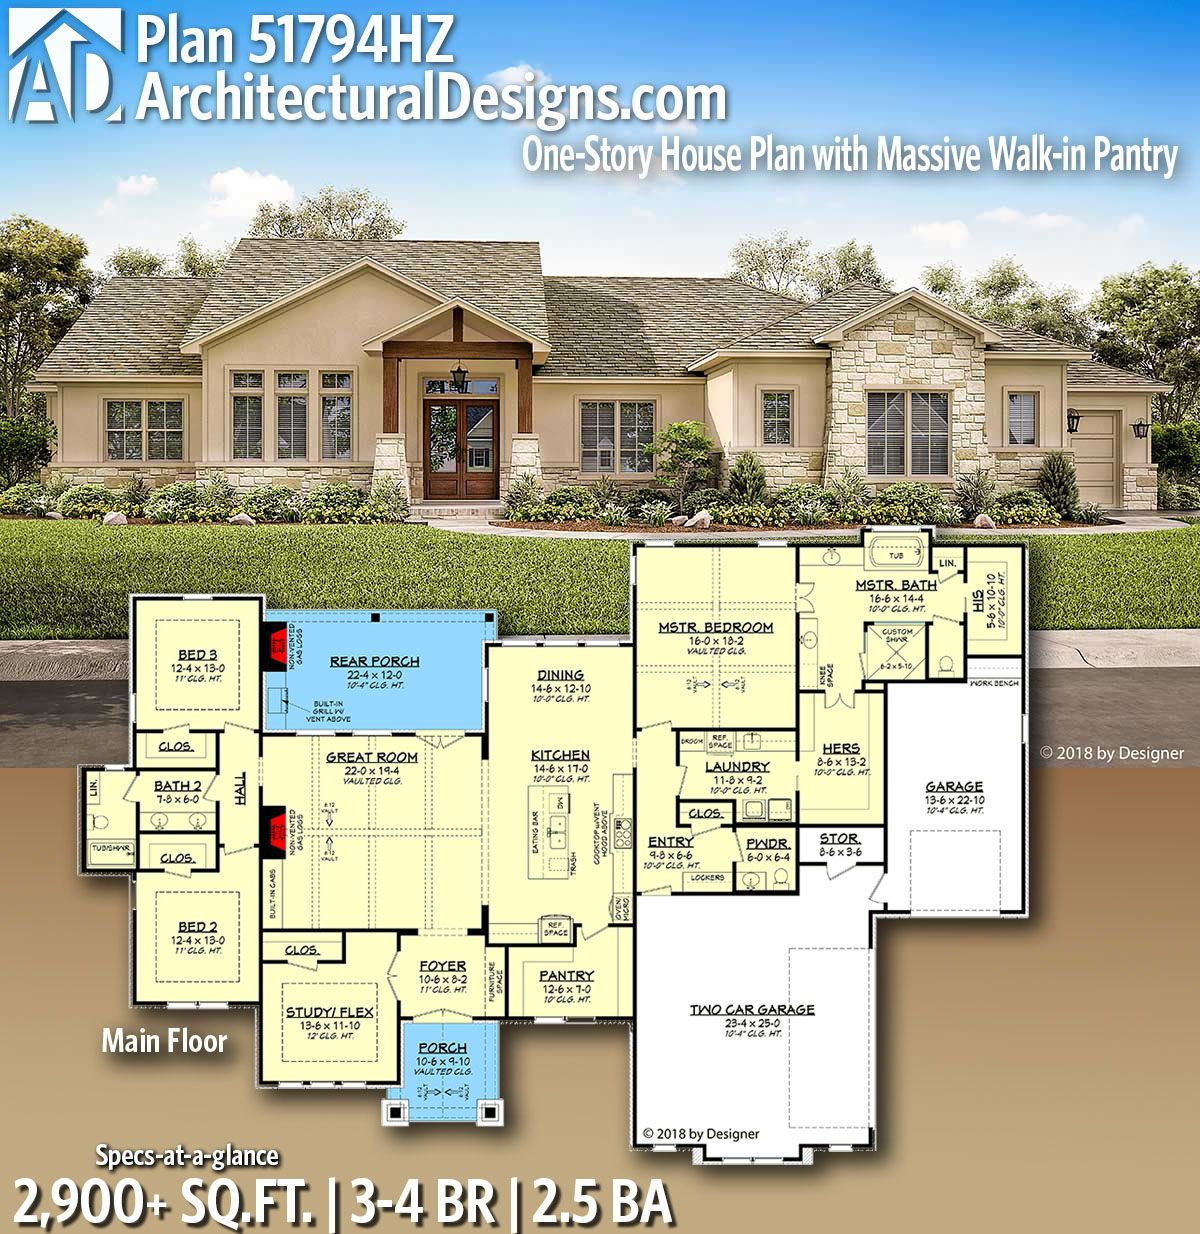 Plan 51794hz One Story House Plan With Massive Walk In Pantry New House Plans Craftsman House Plans Ranch House Plans